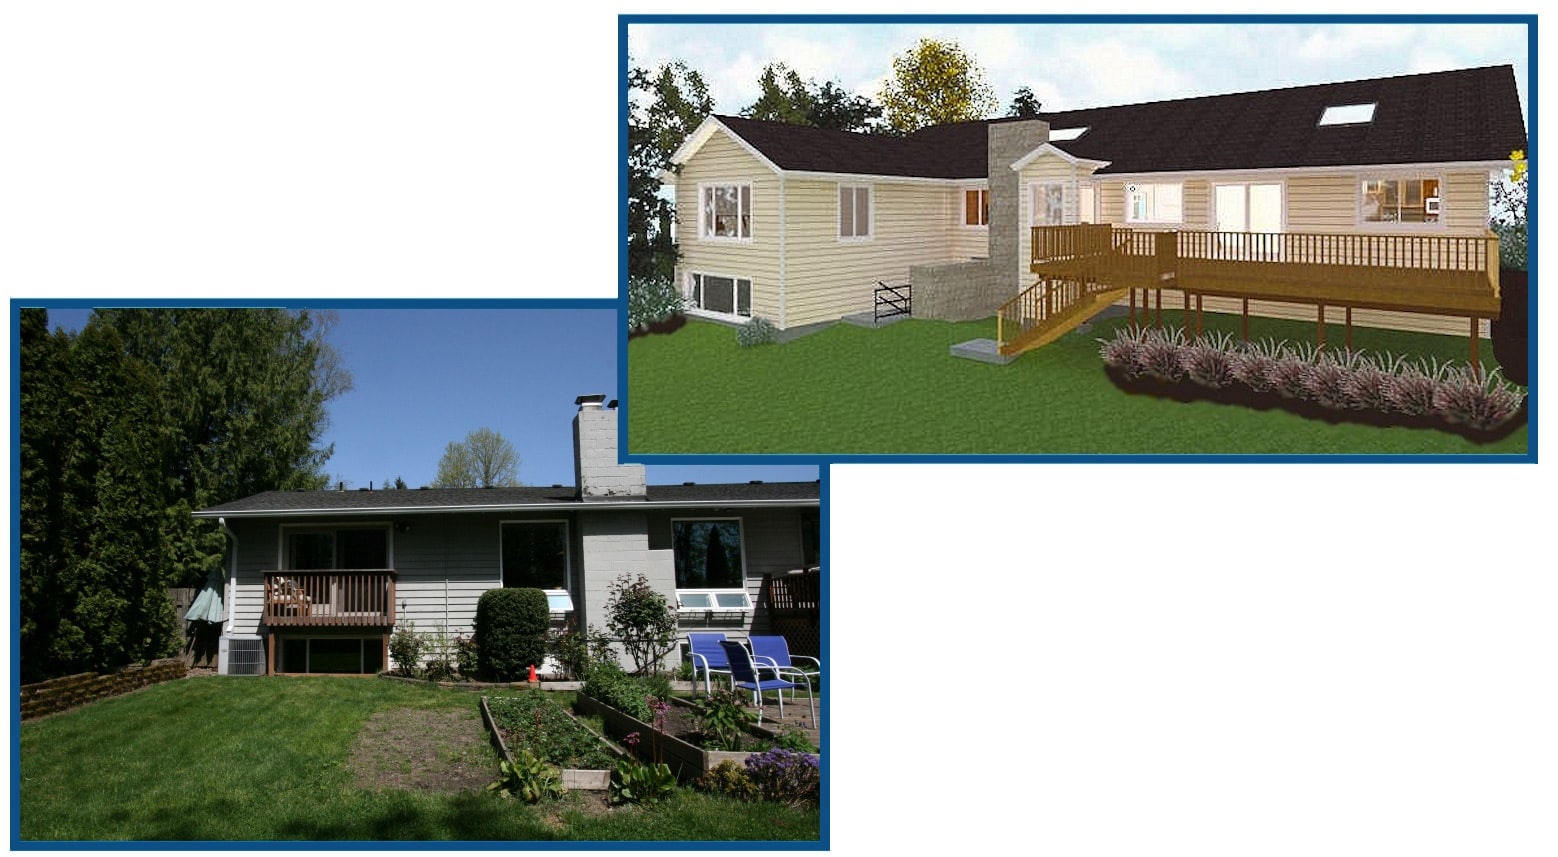 Rear Exterior of Home and Virtual-Reality Rendering with Master Suite and New Bedroom Addition